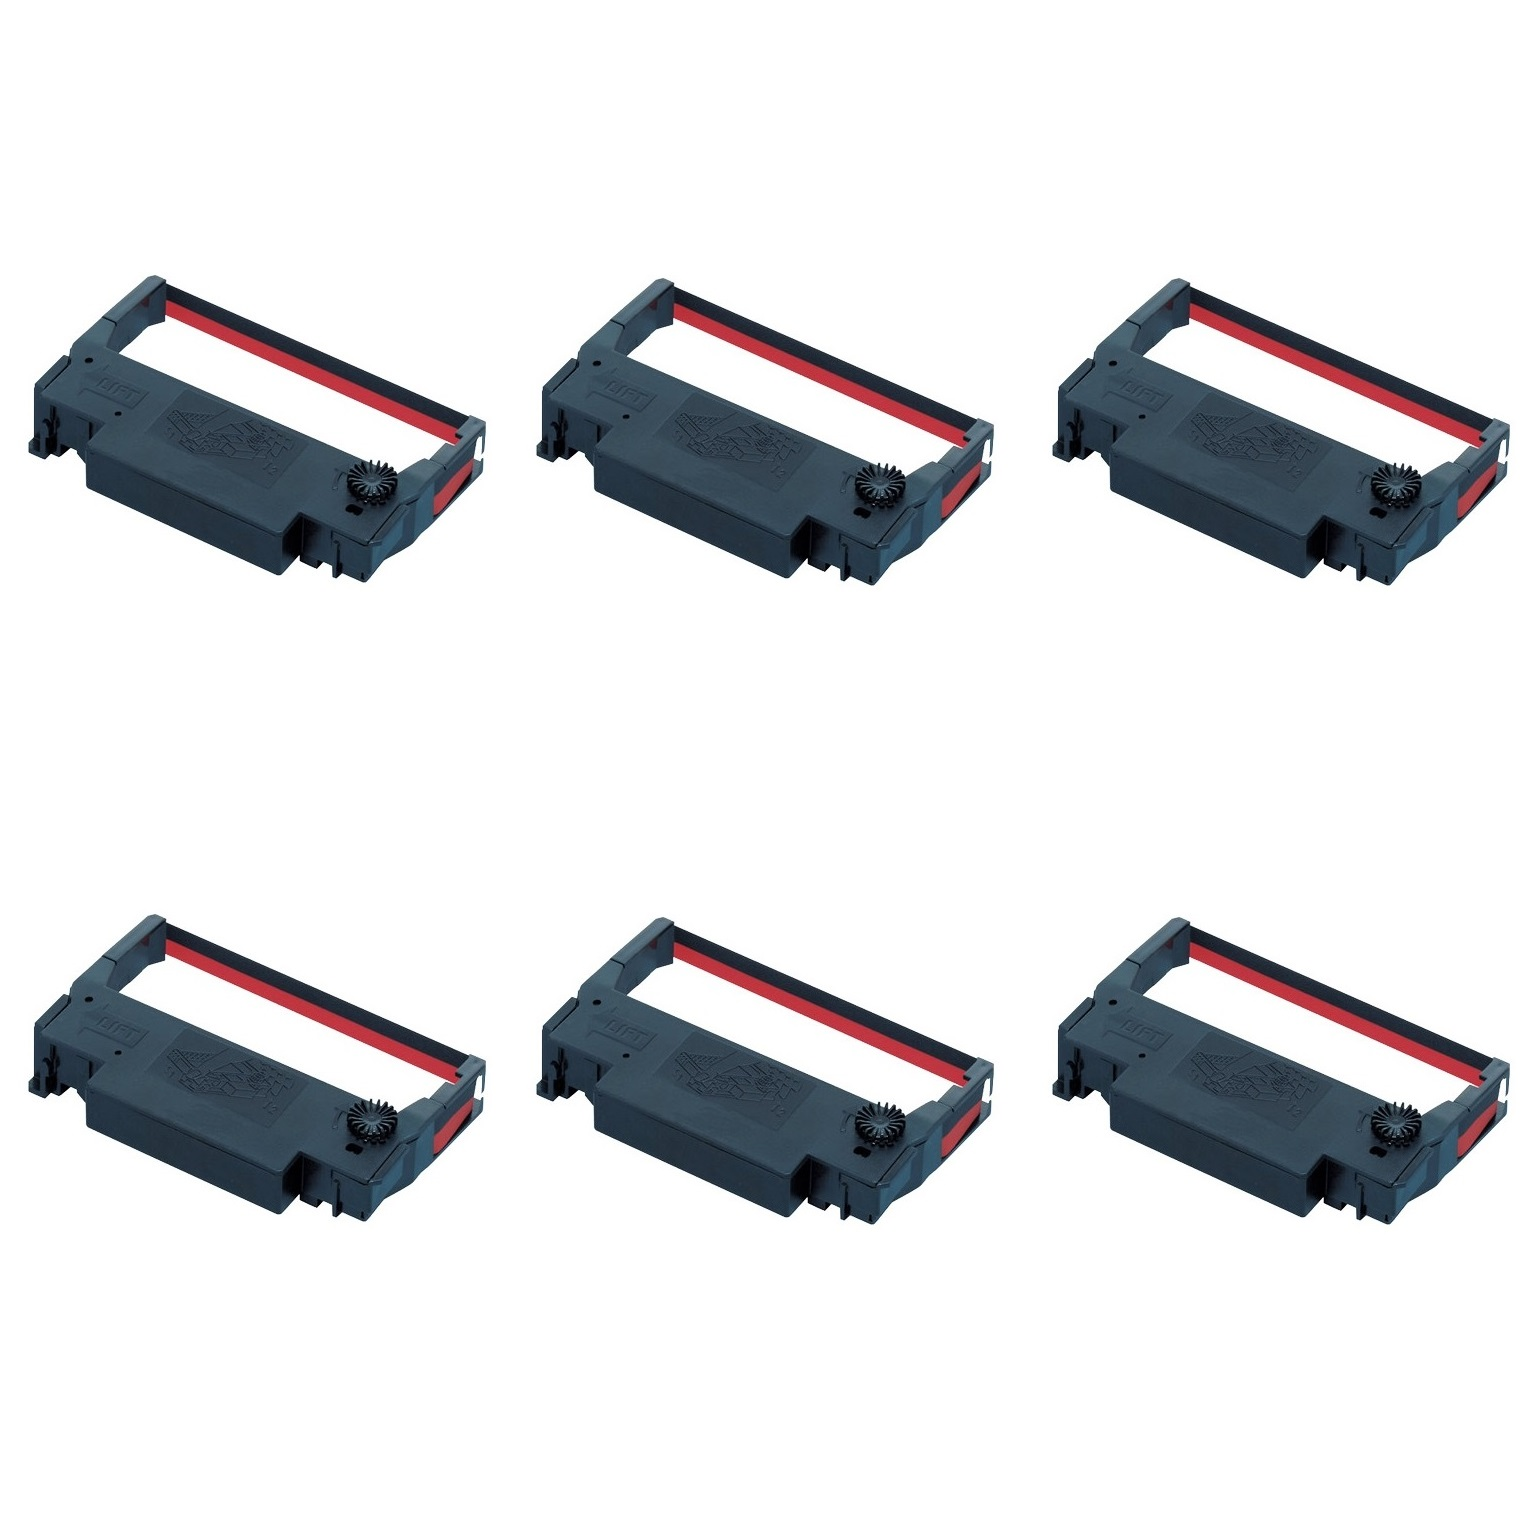 Epson ERC 30/34/38 Red & Black Ink Ribbons - 6 Pack